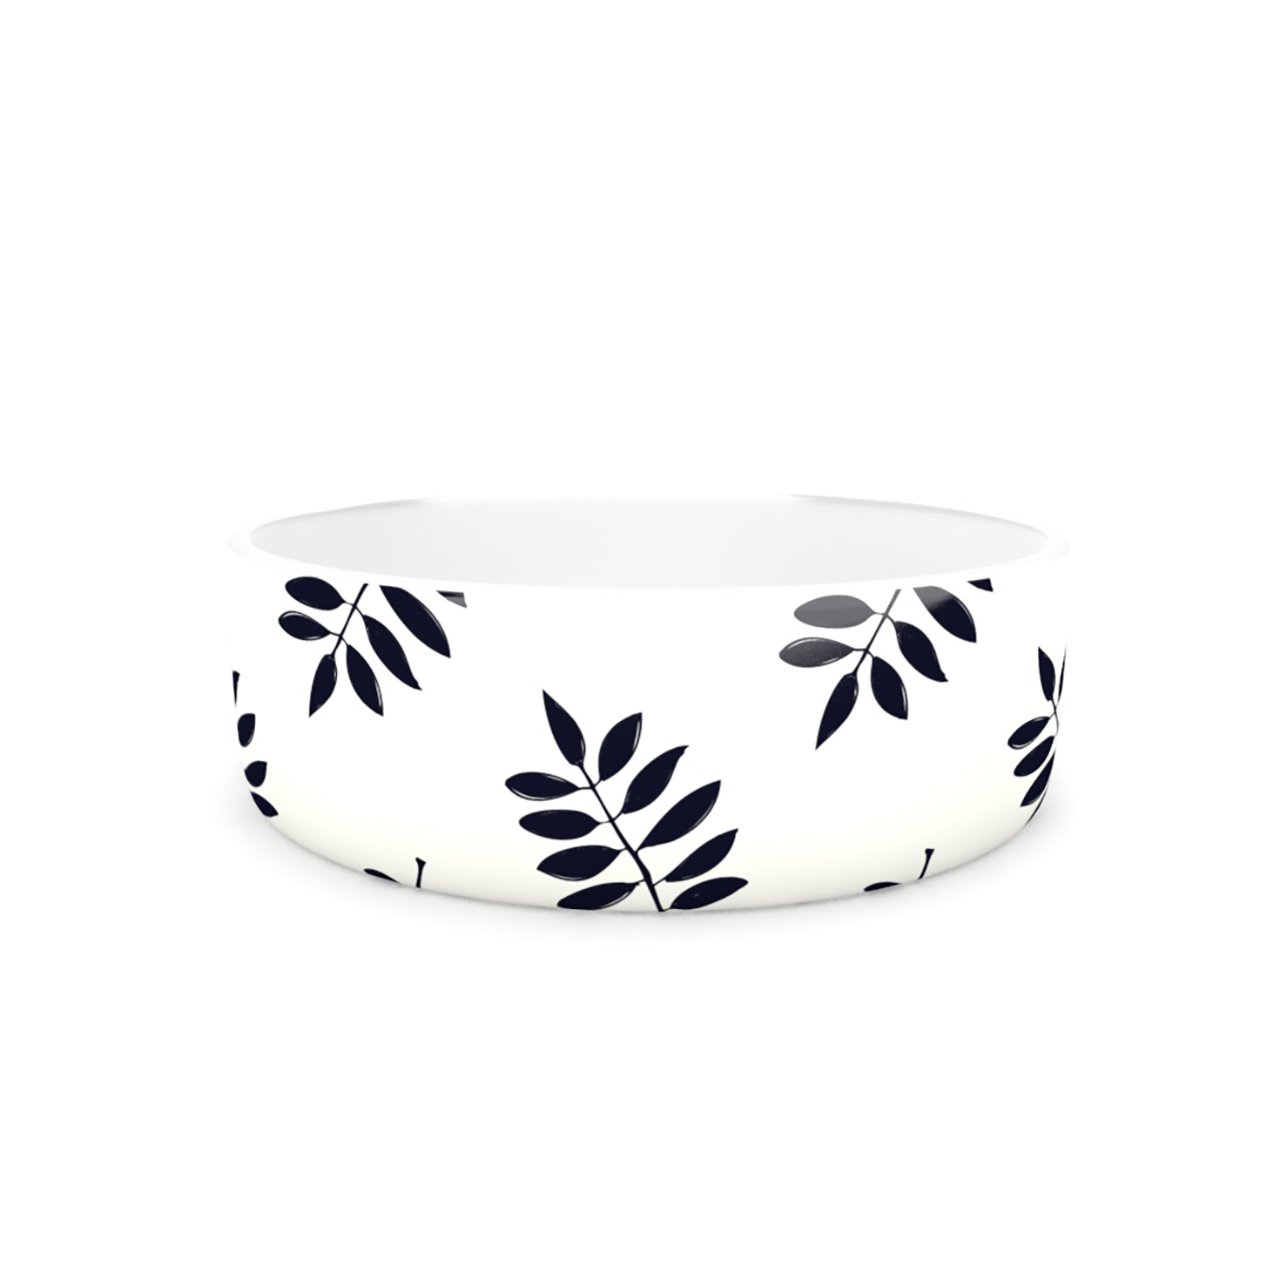 Kess InHouse Laurie Baars Pagoda Leaf Small  Pet Bowl, 7-Inch, Black White